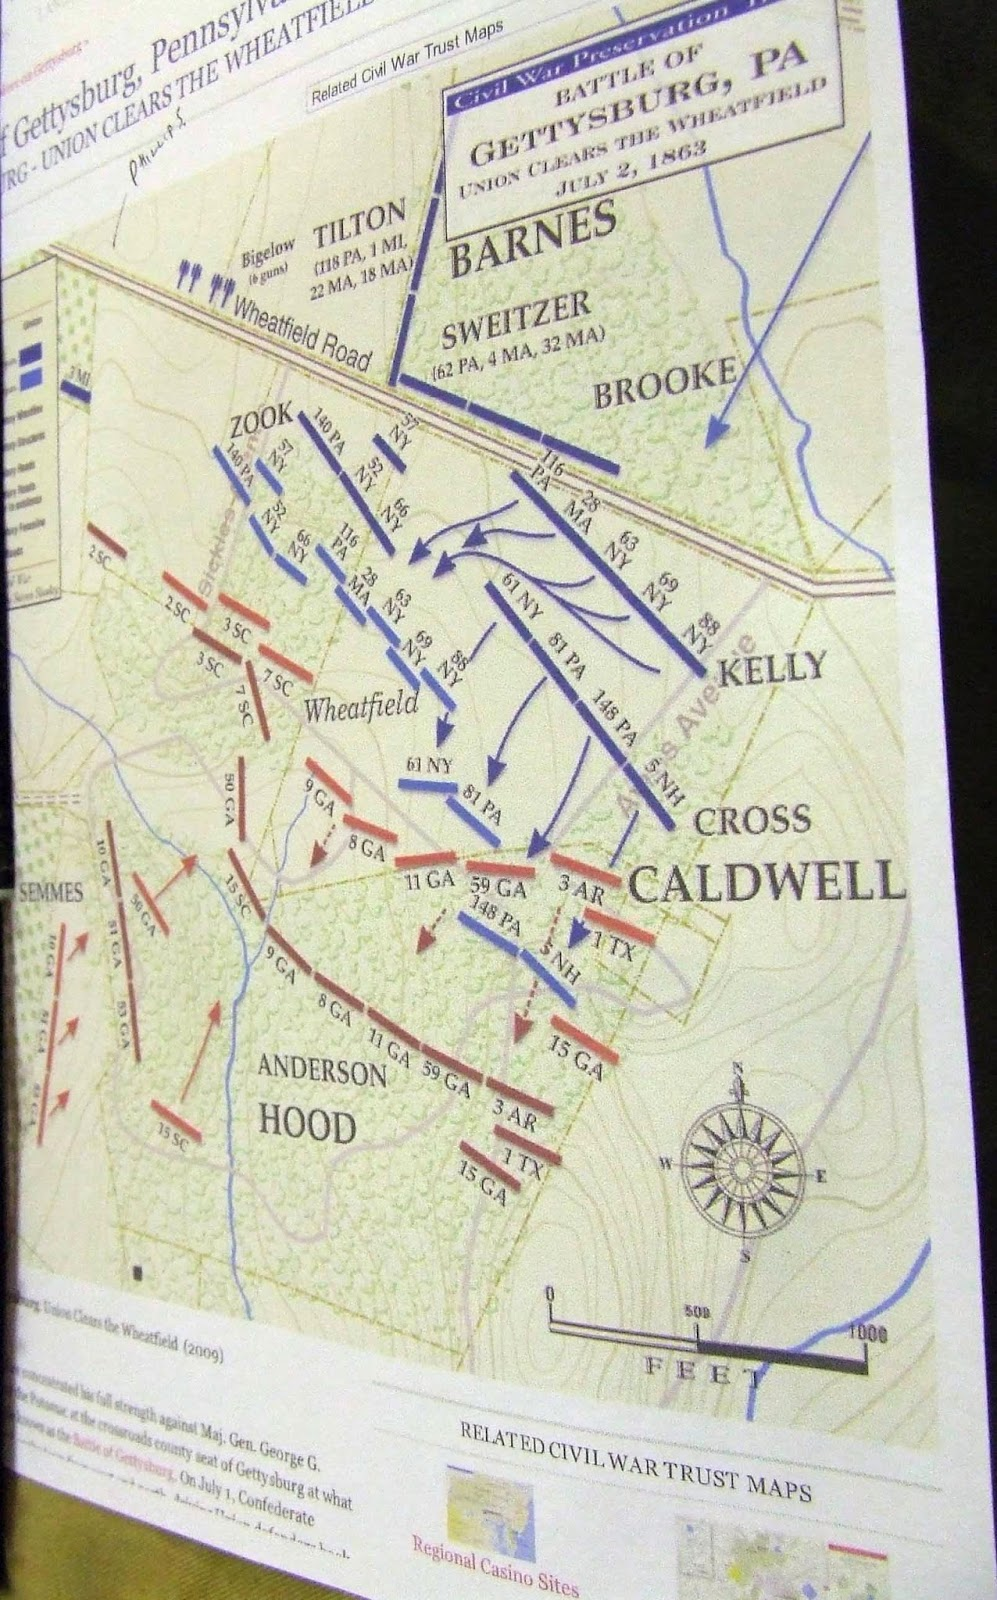 gettysburg game july 2 1863 the union clears the wheatfield october 2013